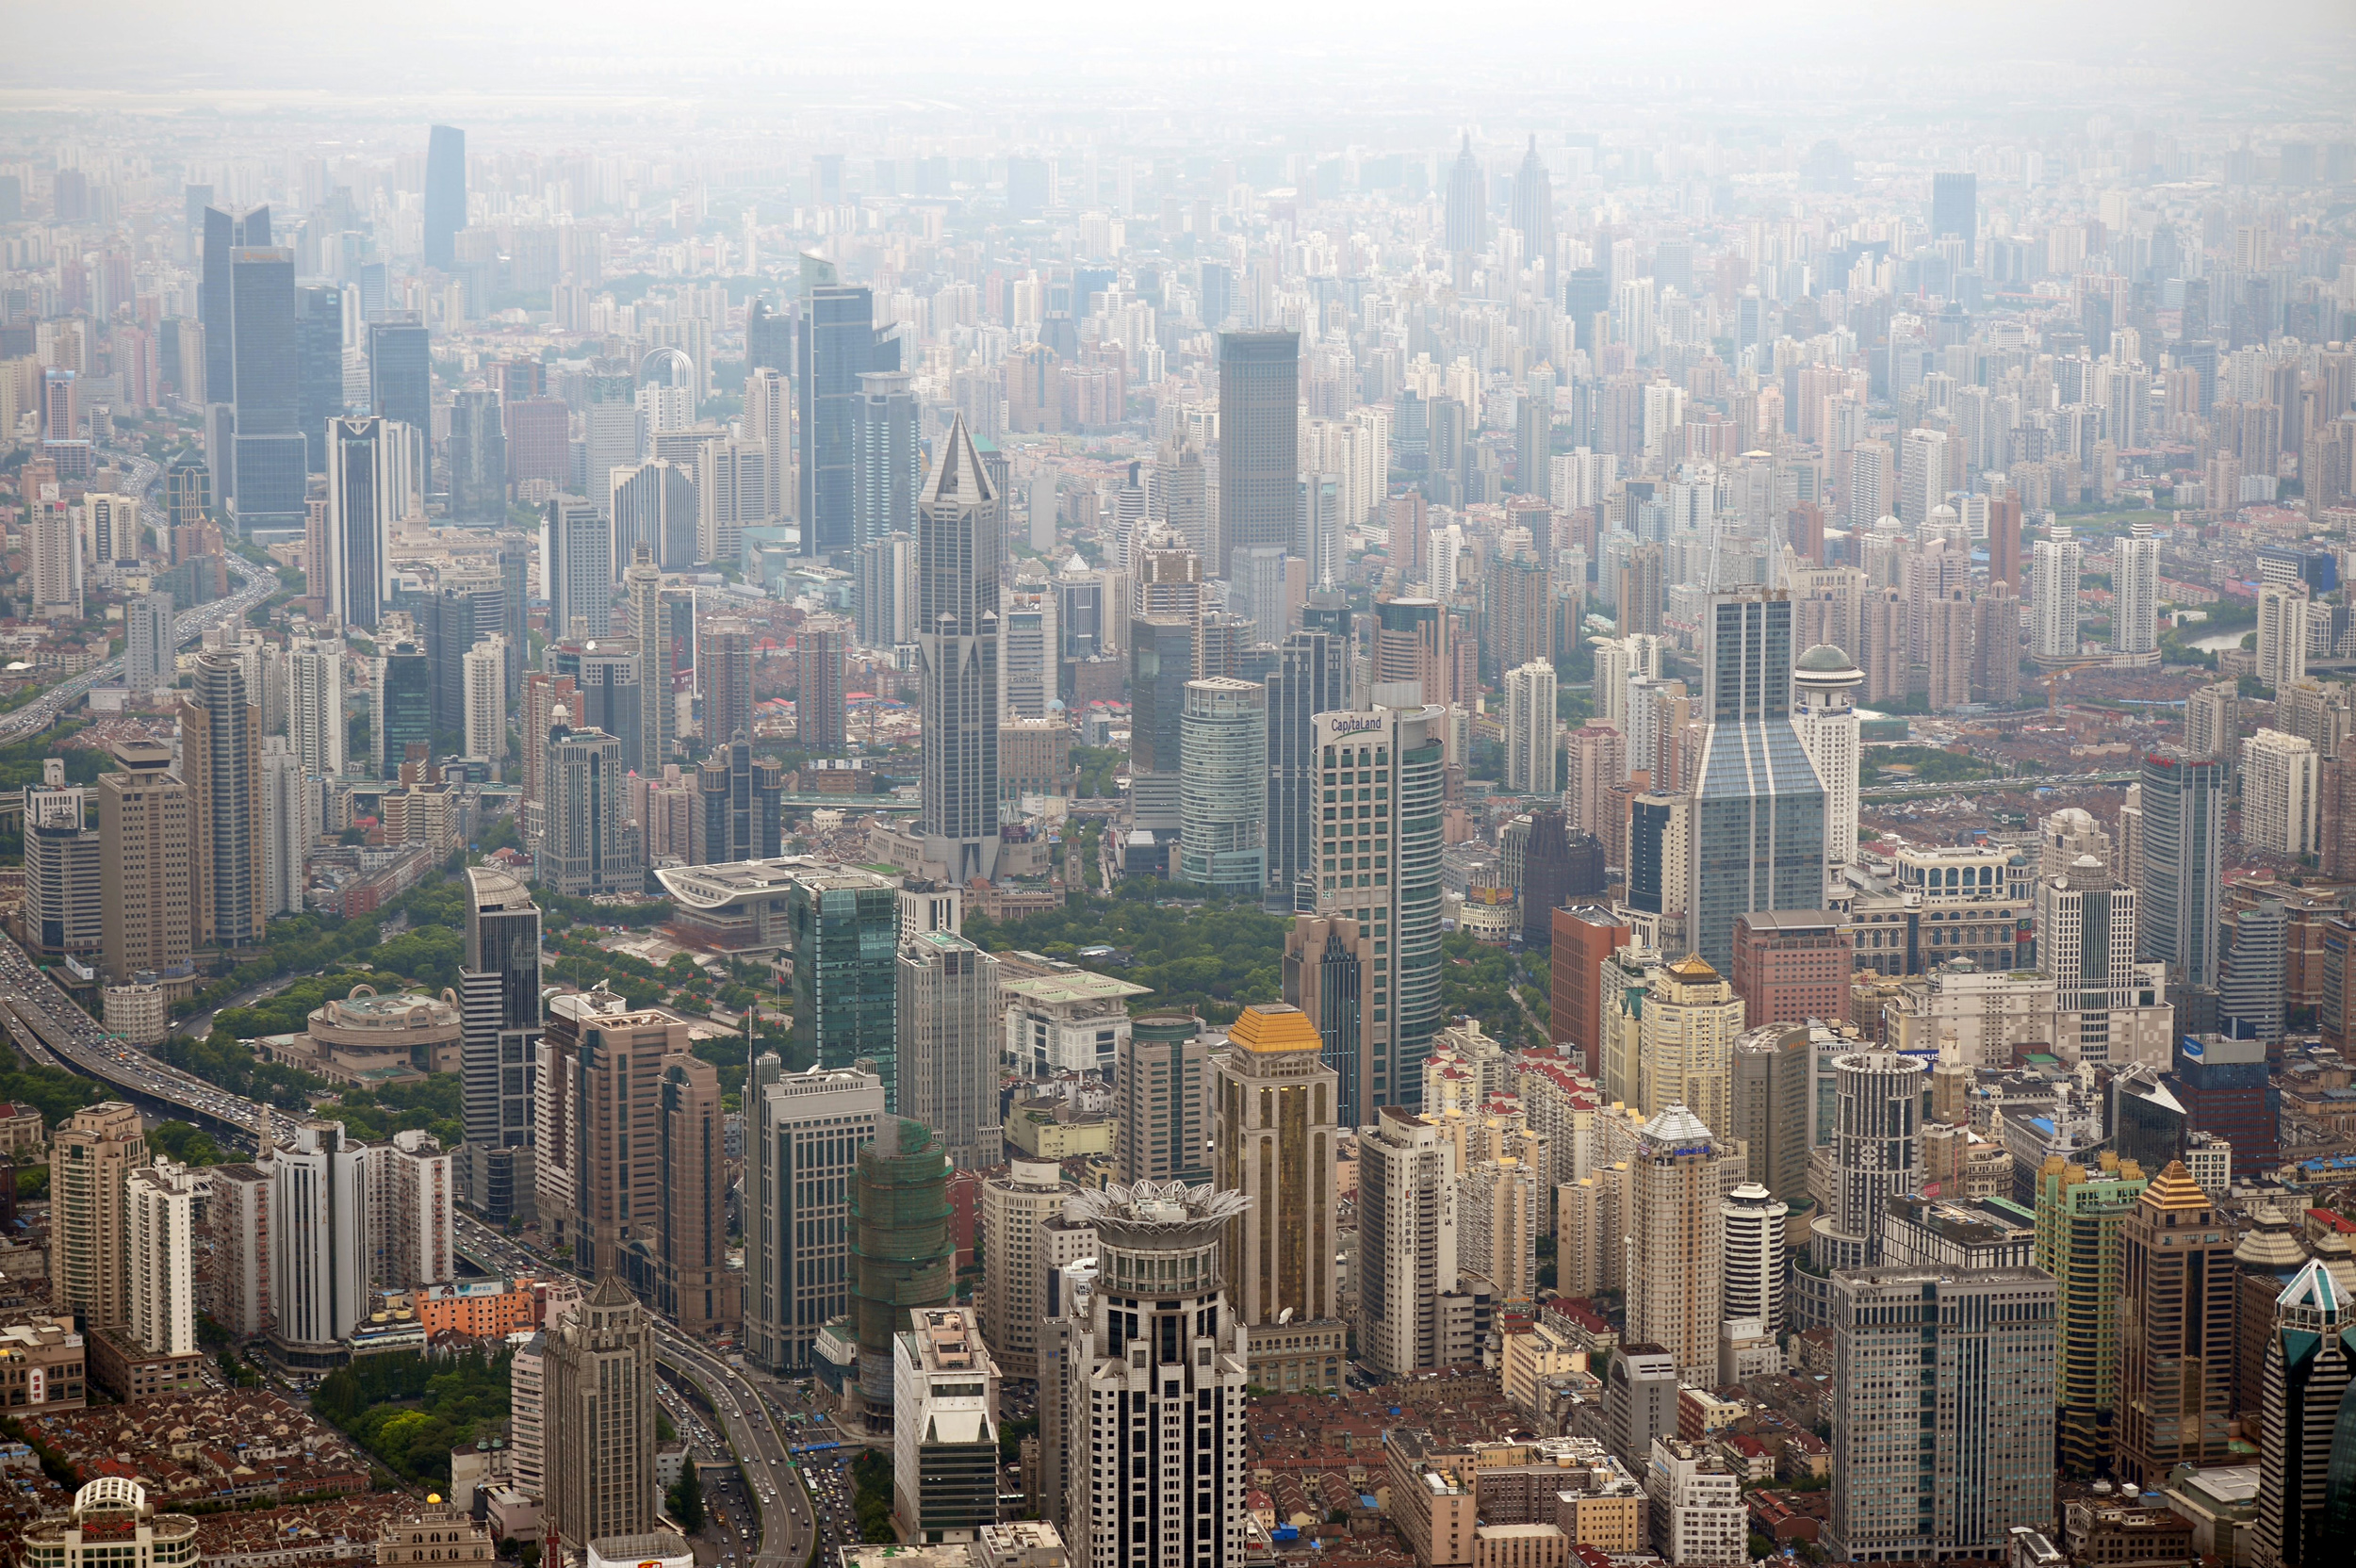 House Prices In Major Chinese Cities Rose 4.9% In March ...